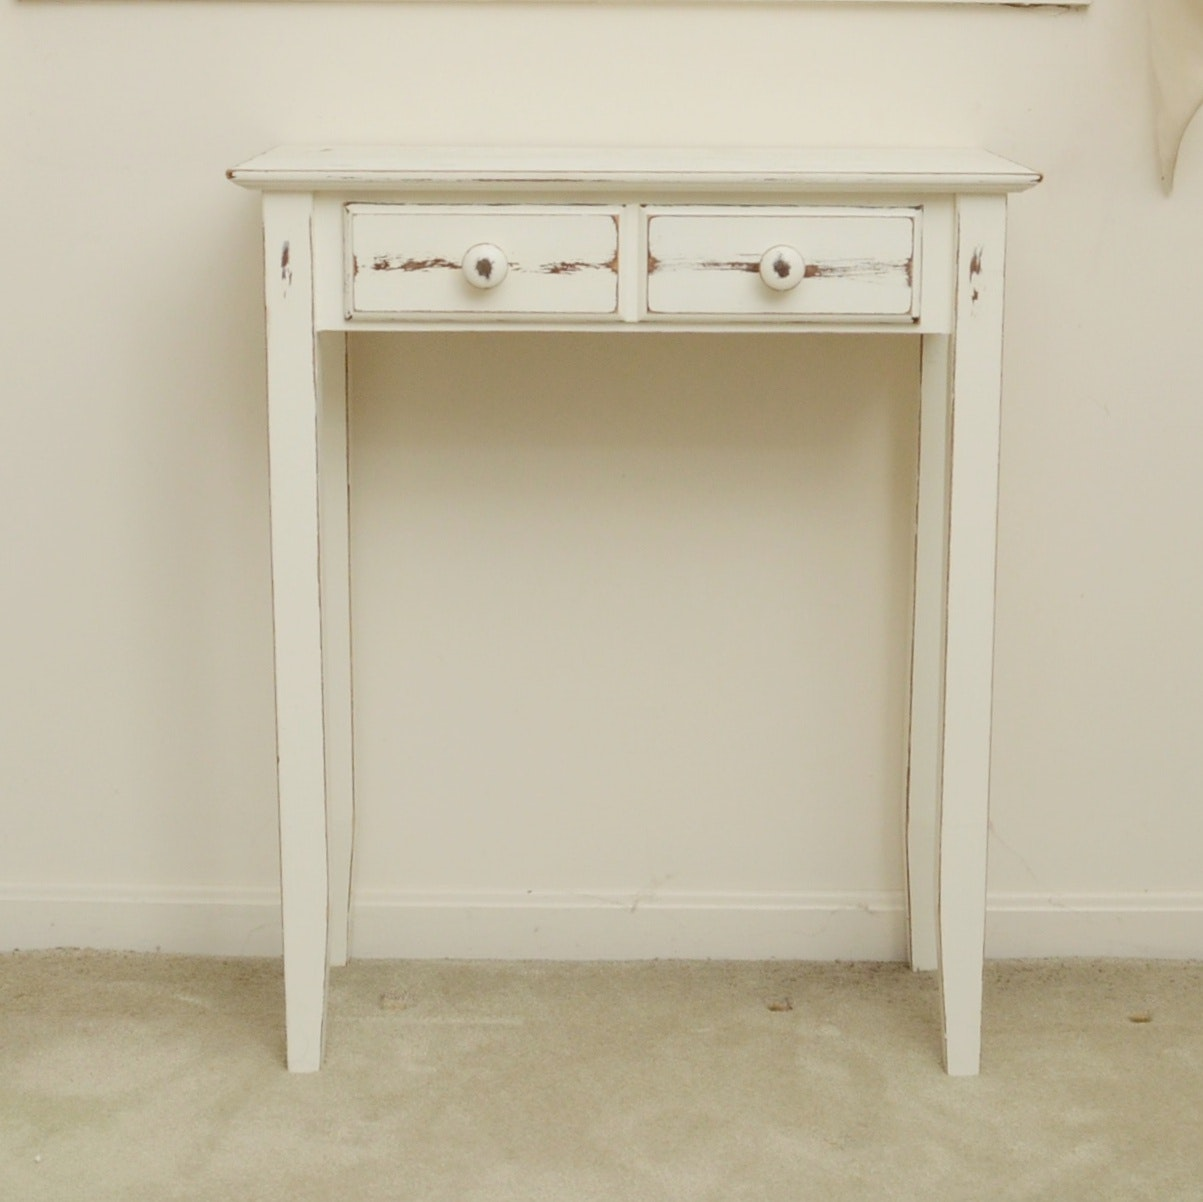 Modern Made White Wash Shabby Chic TabLe